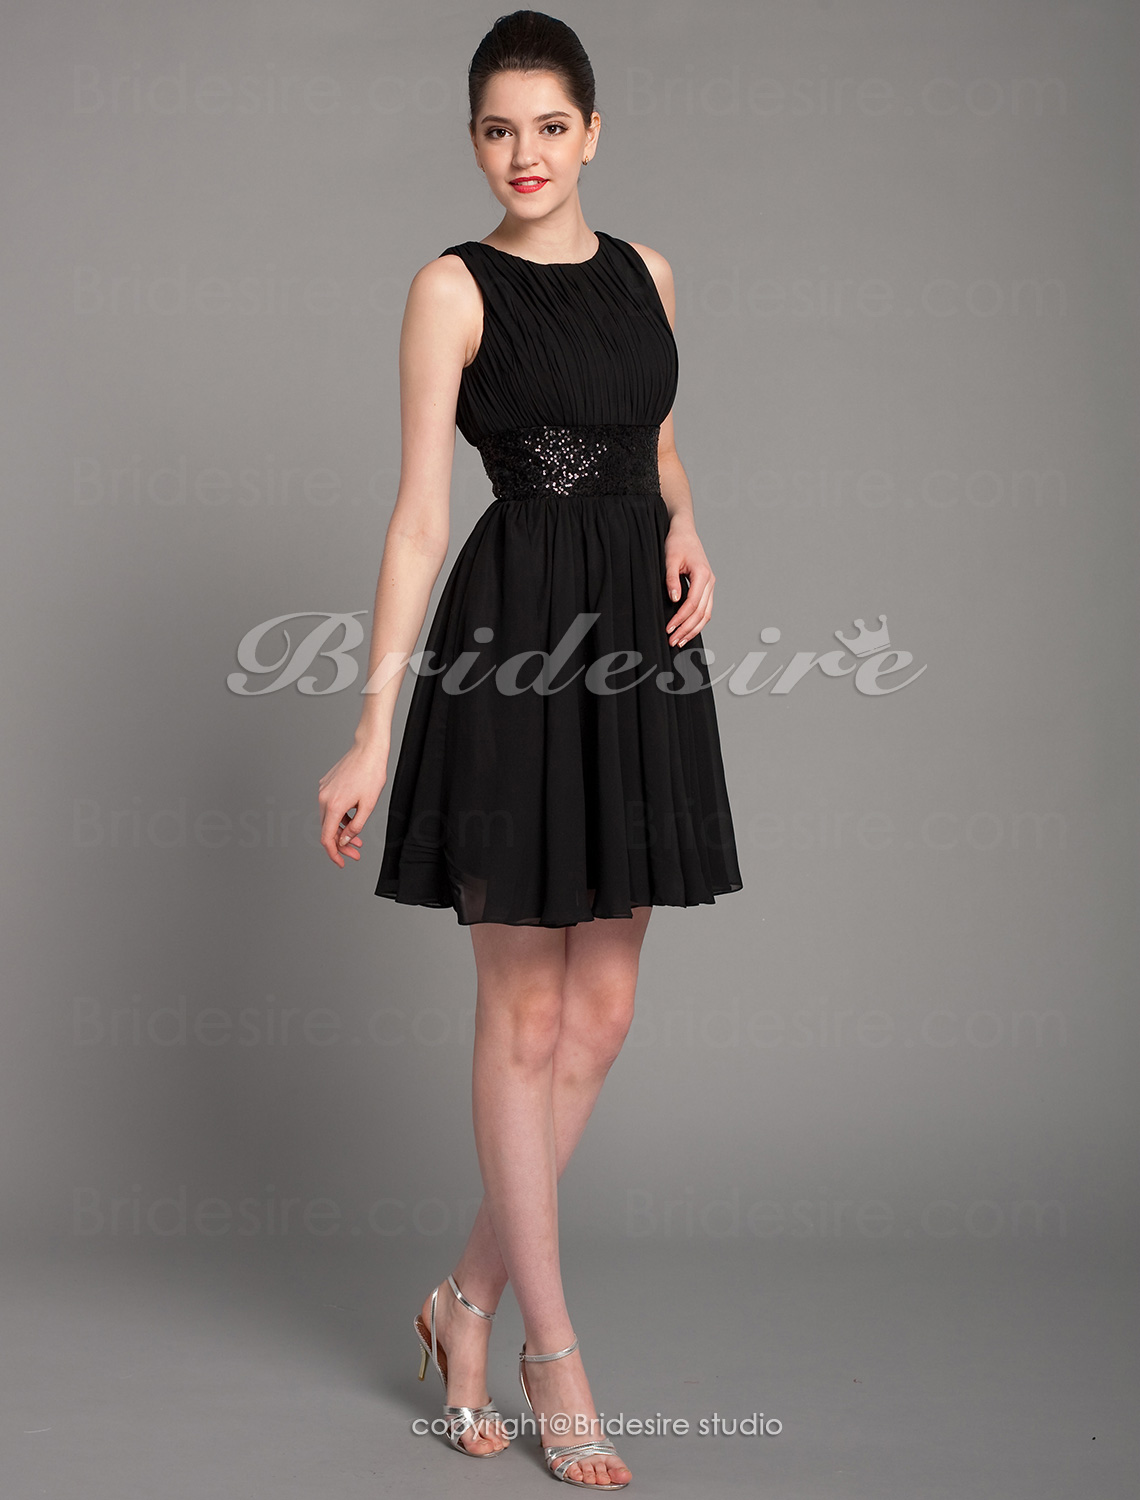 Sheath/ Column Chiffon Knee-length Bateau Cocktail Dress